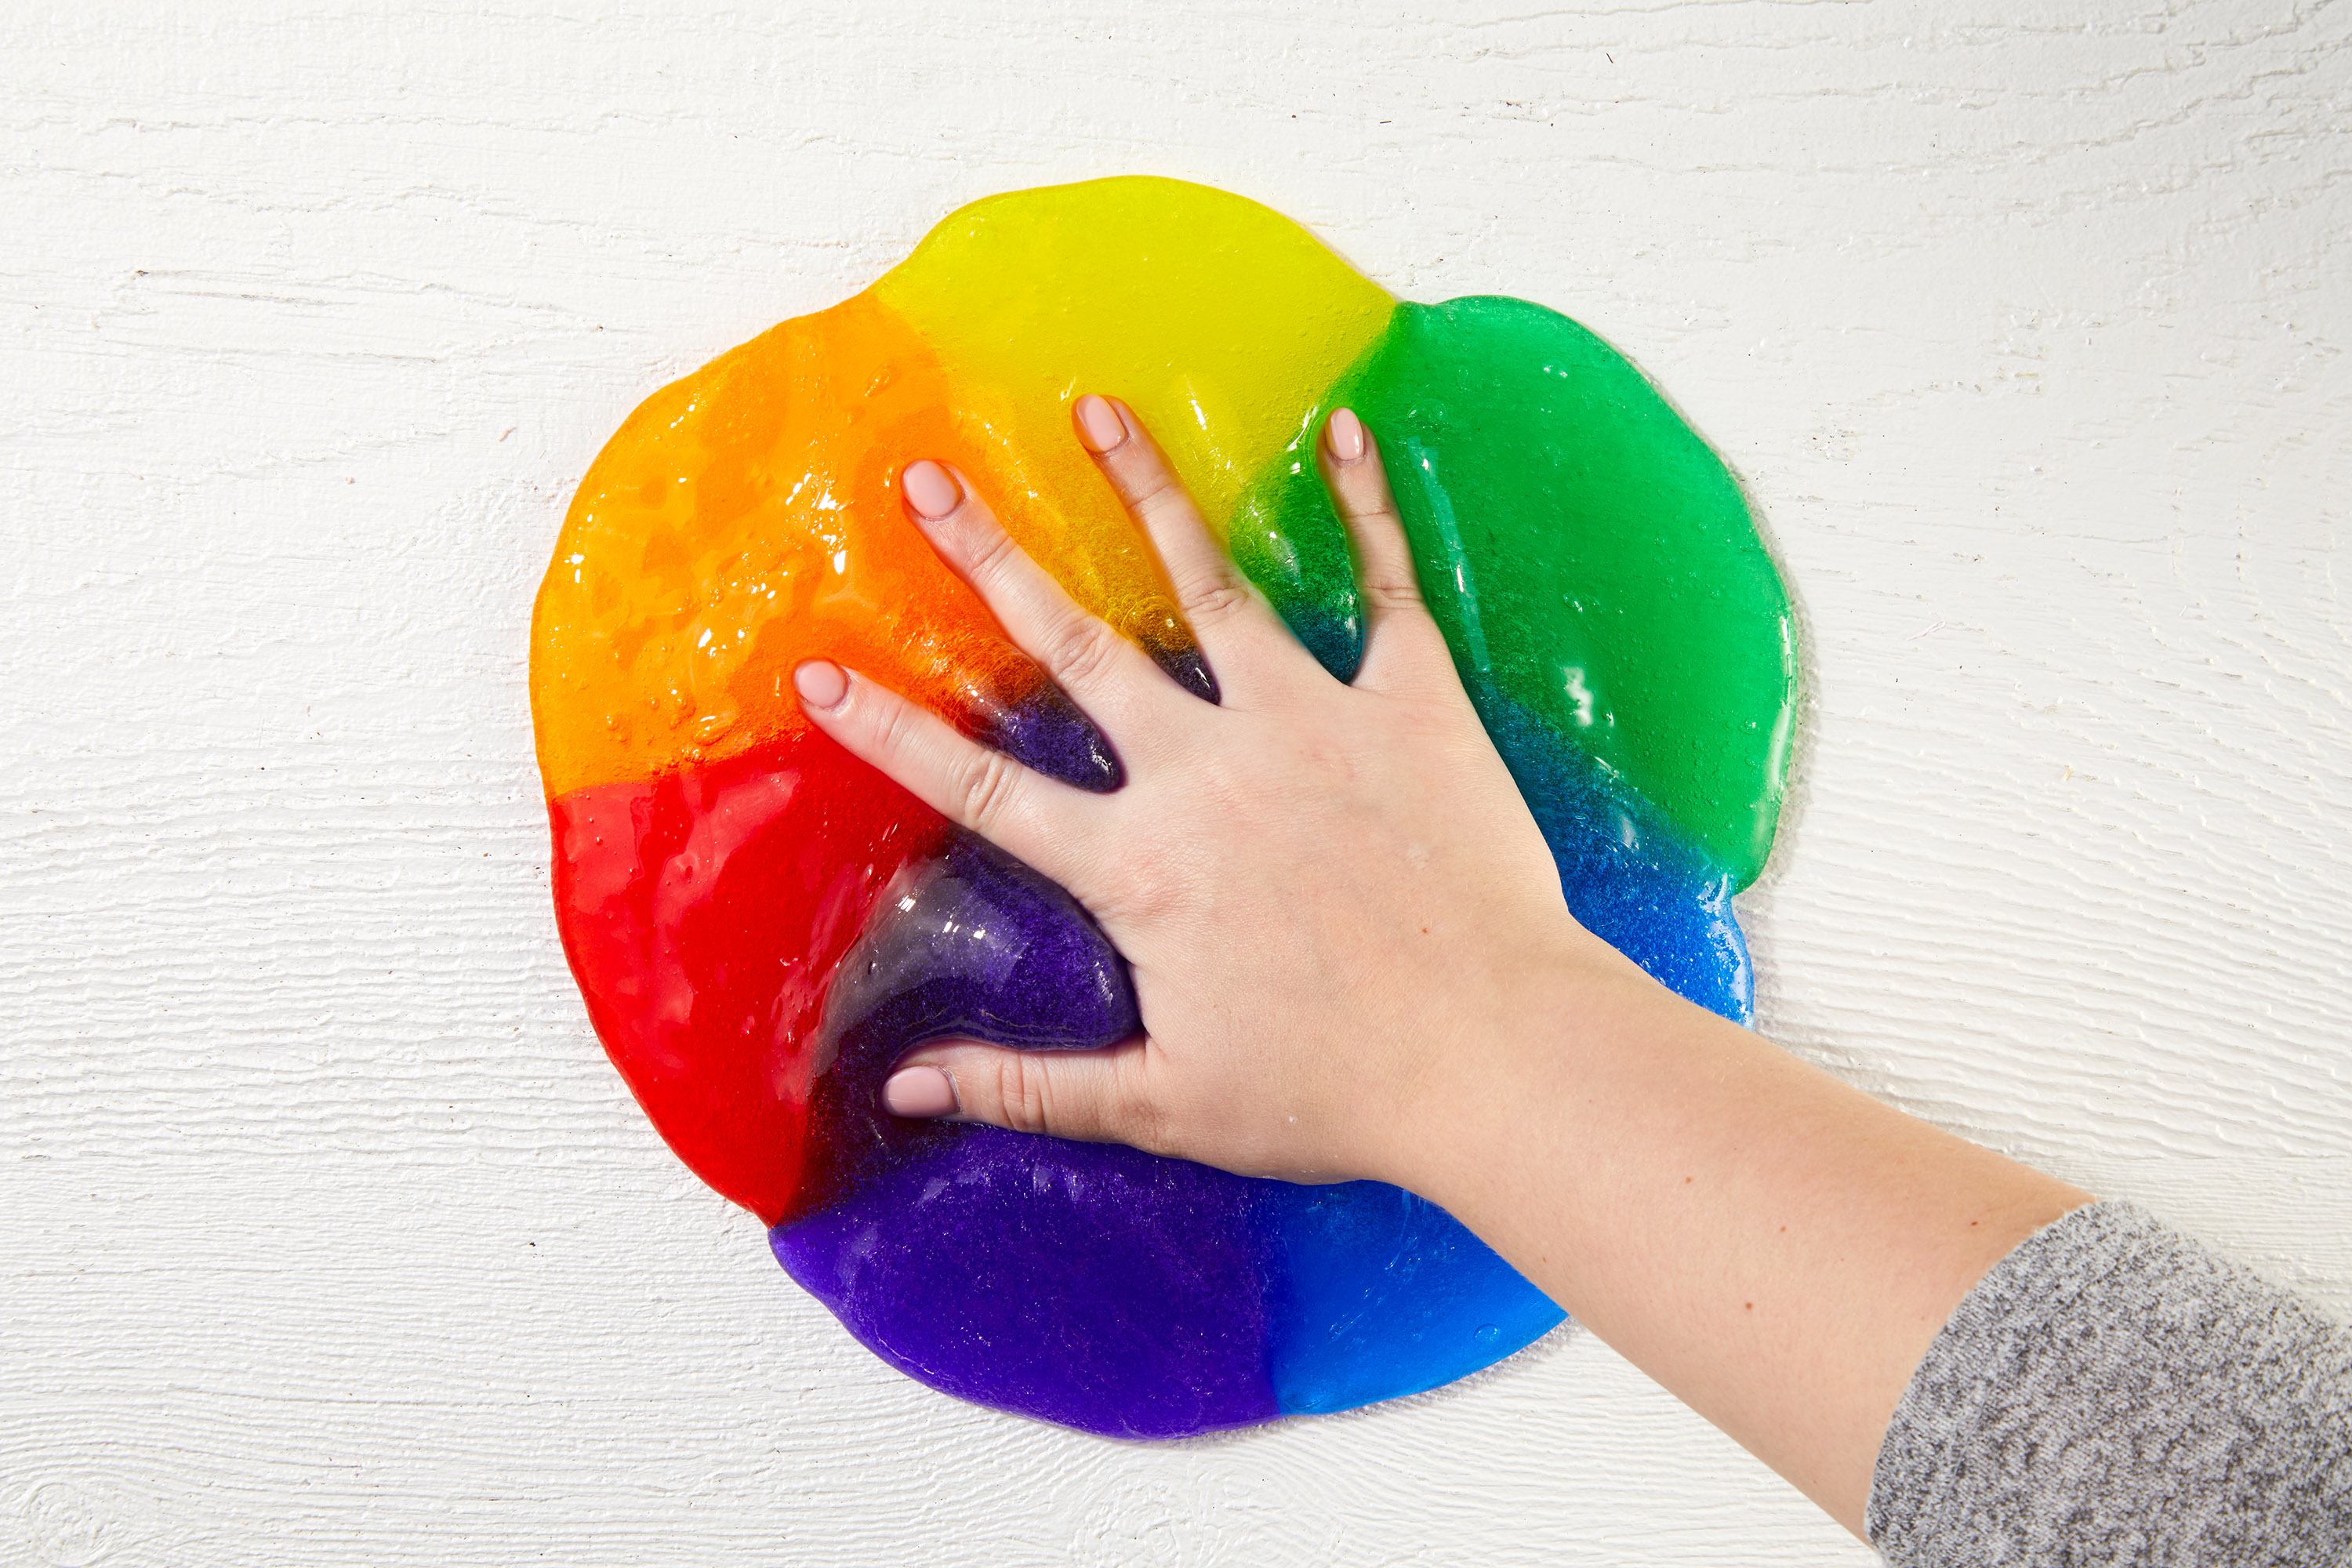 making hand impression in rainbow slime